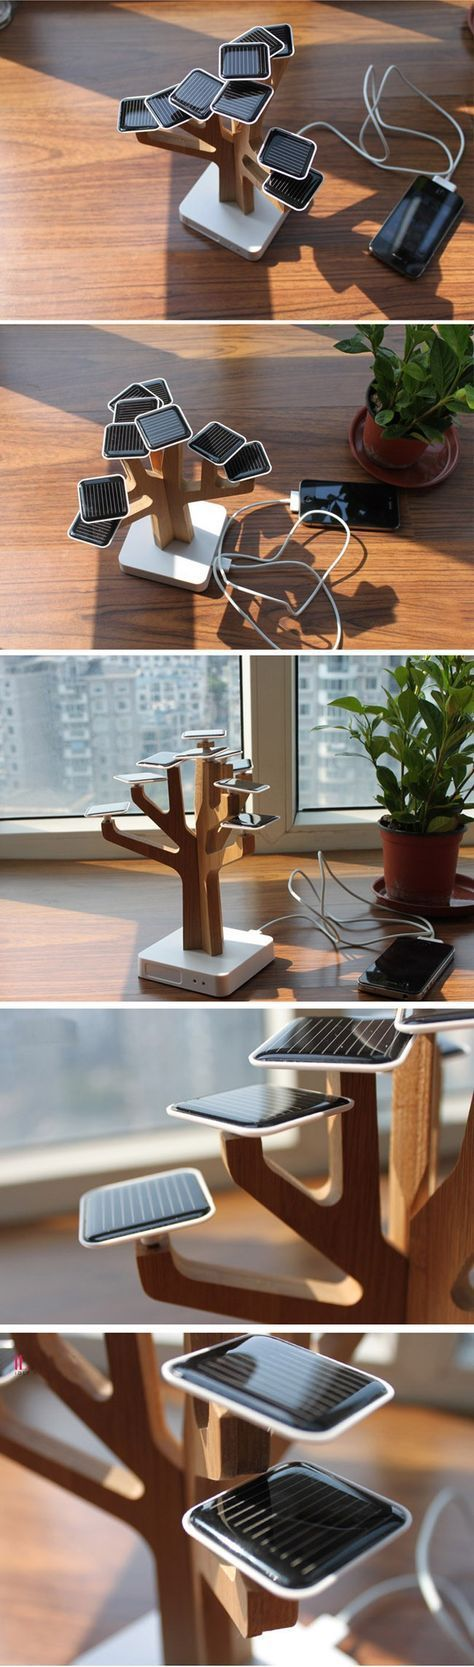 The Suntree Solar Charger is a solar powered charger for your mobile phone. It is powered by 9 solar panel leaves and has a trunk made from bamboo.